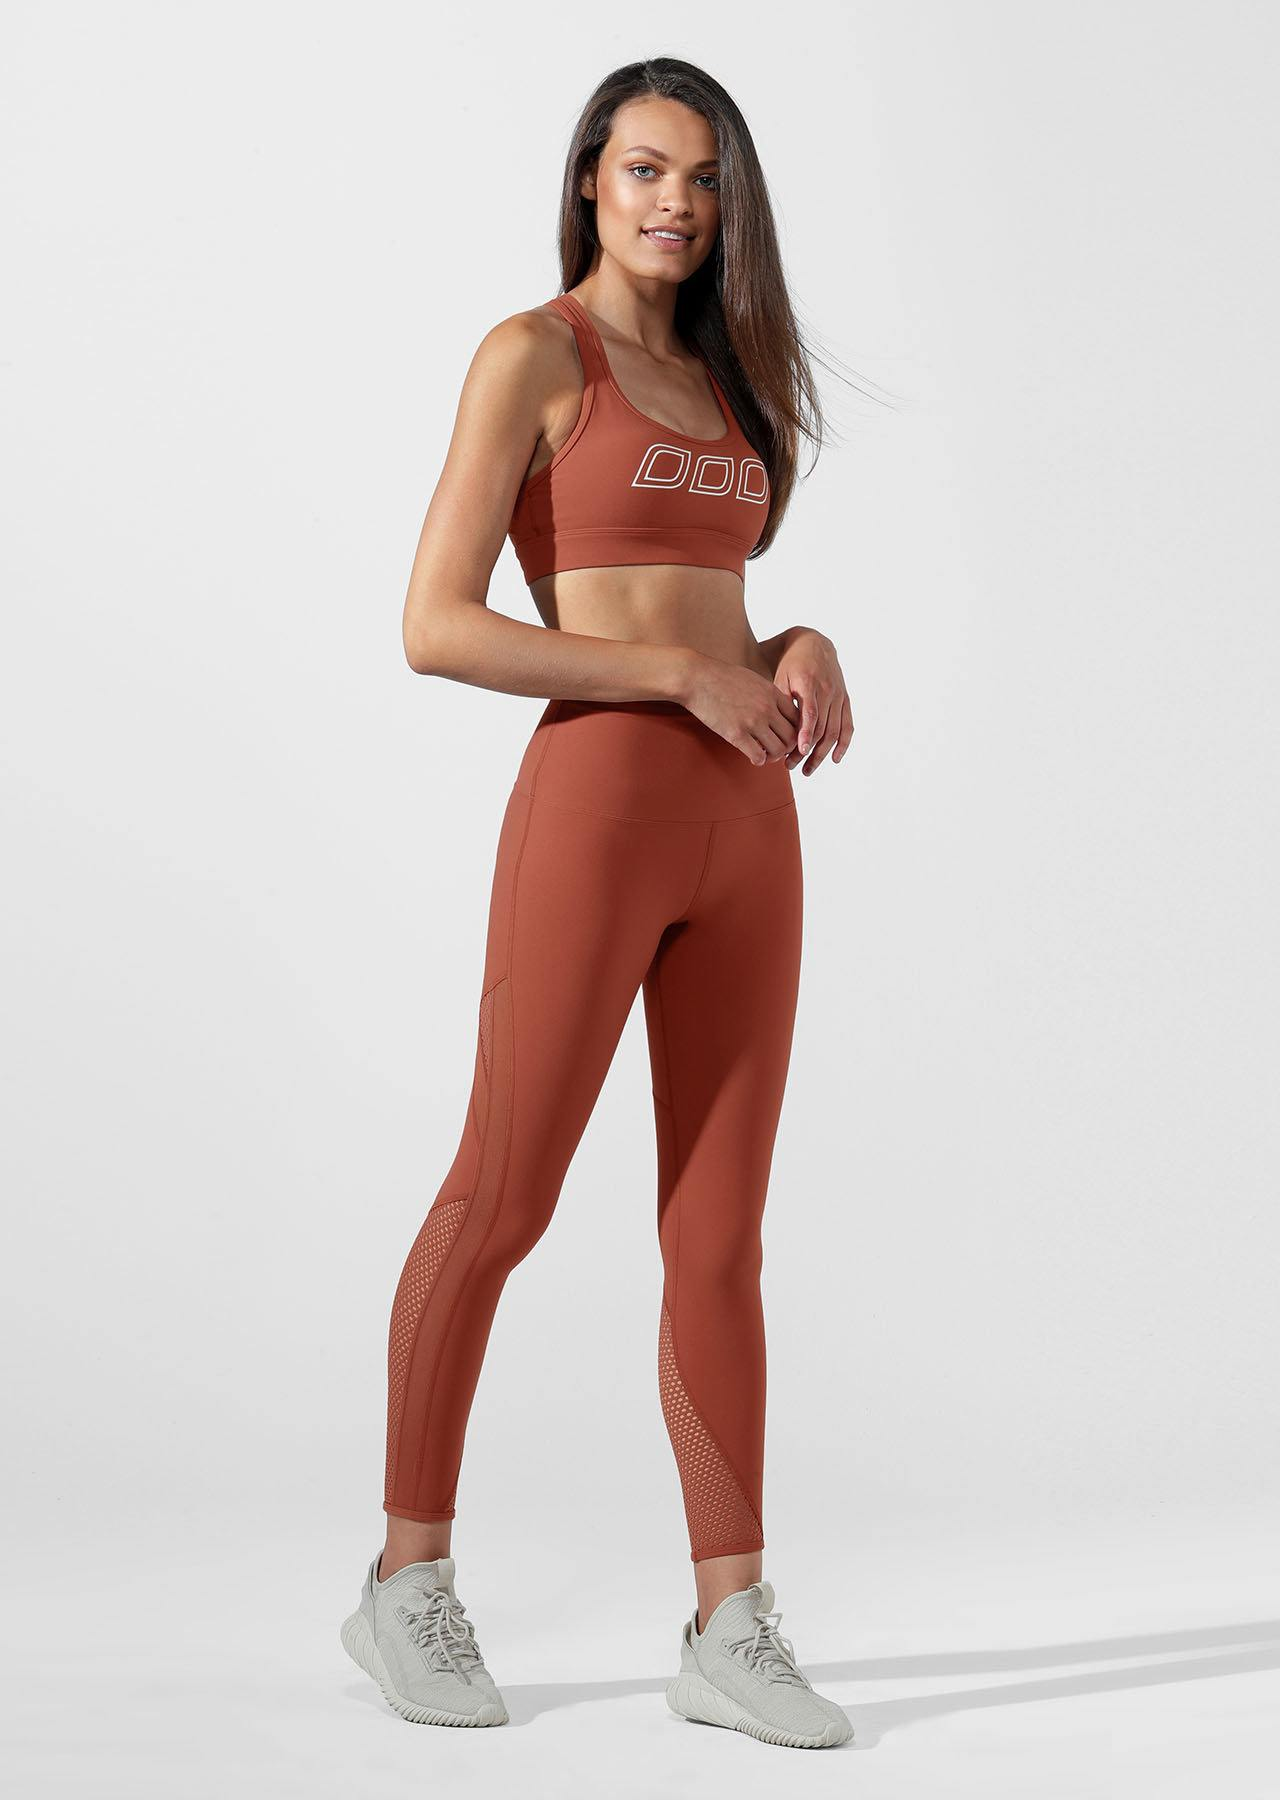 ICONIC SPORTS BRA - RUST